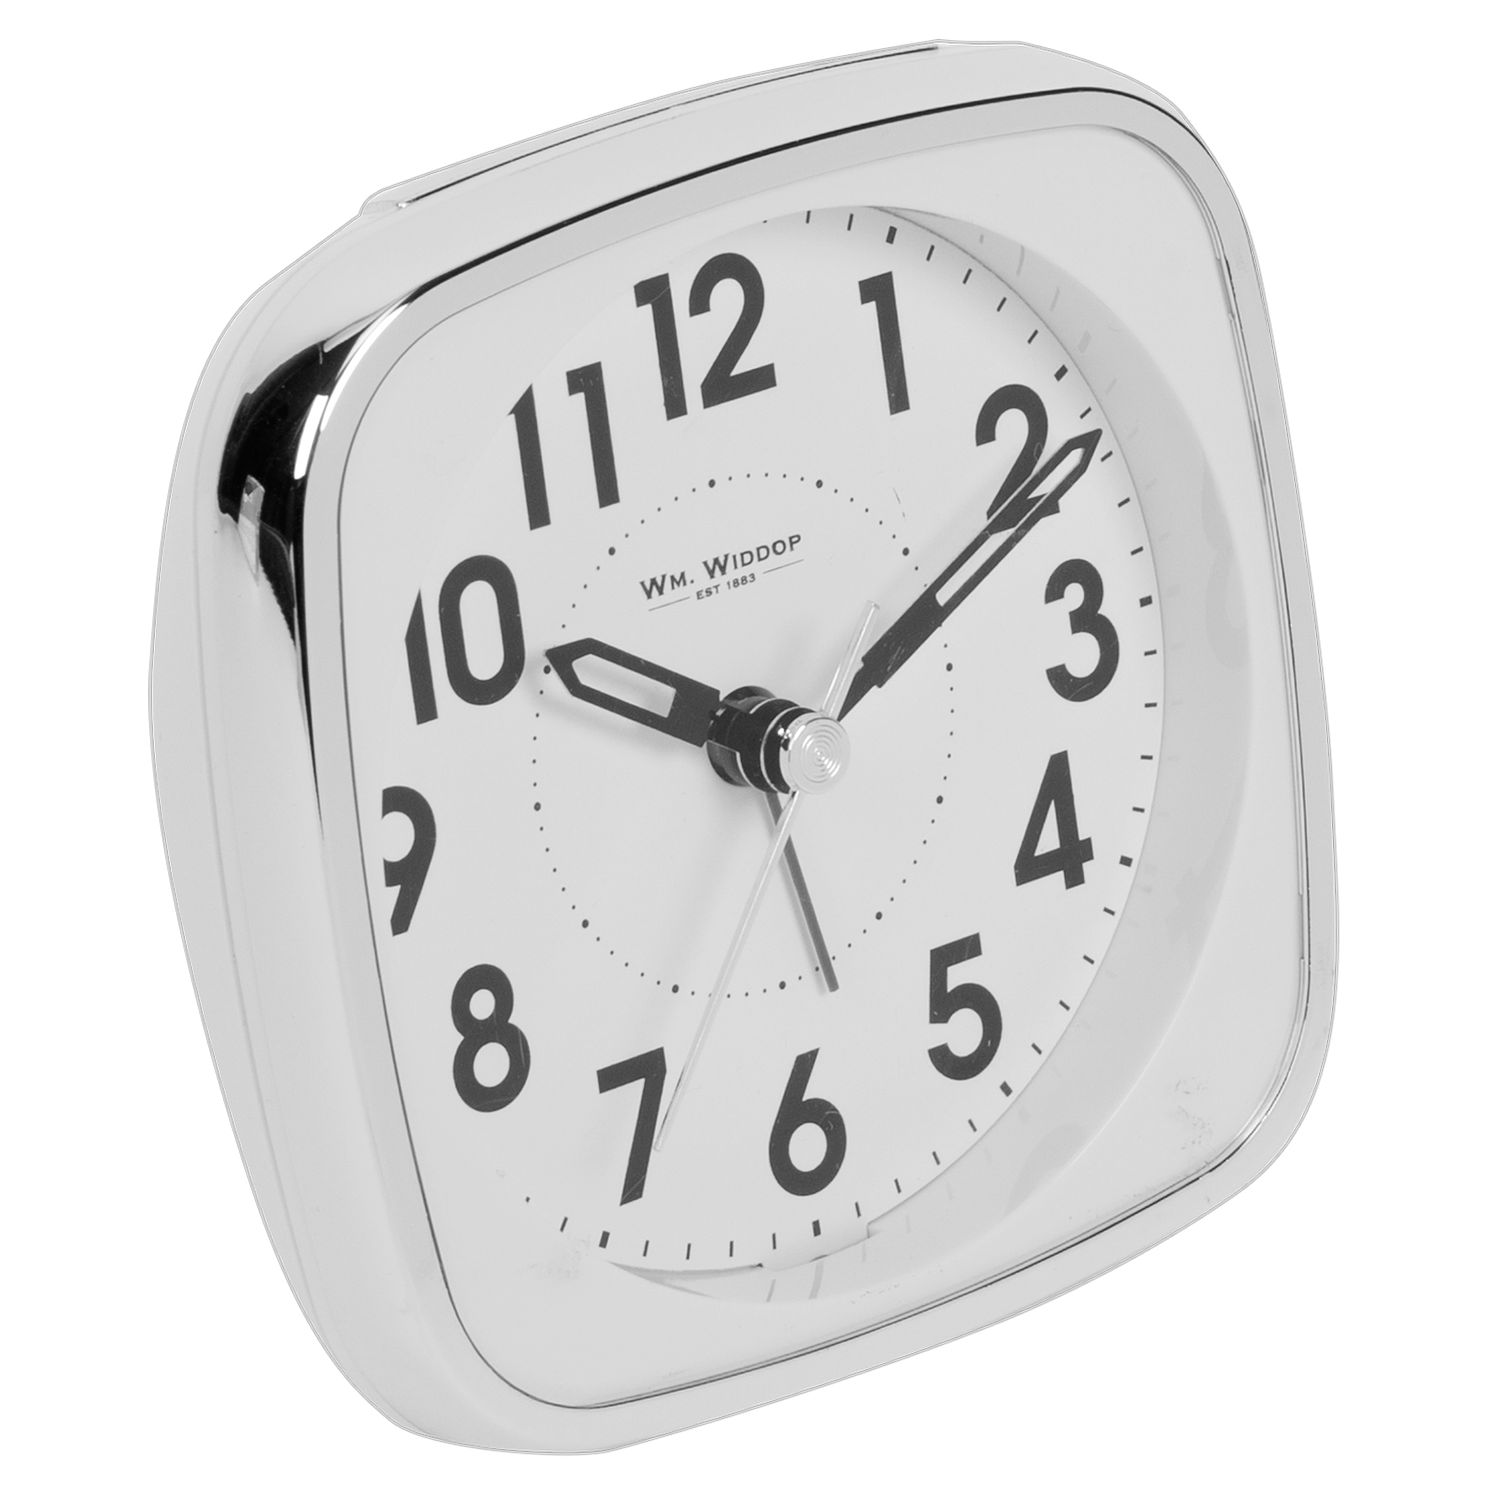 WM. Widdop Silver Tone Square Mantle Alarm Clock - Product number 8194041